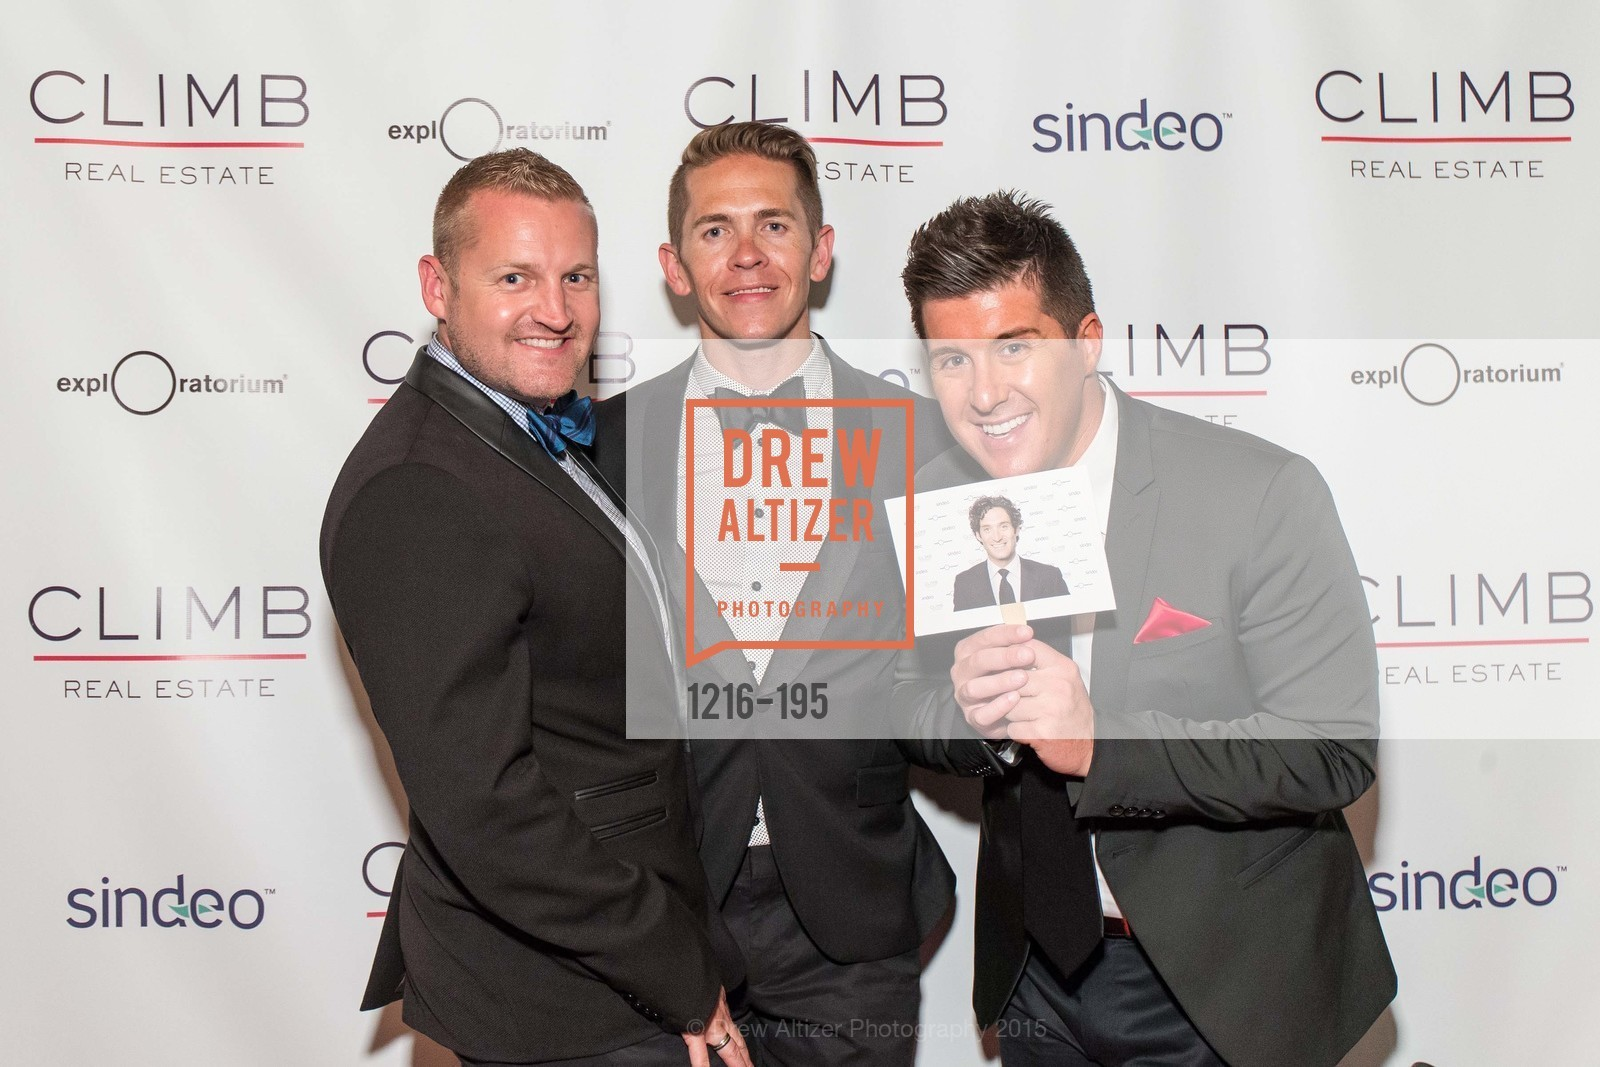 Mike Schmidt, Zach Shubkagel, Lucas Sorah, Climb Real Estate and Sindeo Celebrate the Launch of Million Dollar Listing San Francisco, Local Edition San Francisco. 691 Market St, July 8th, 2015